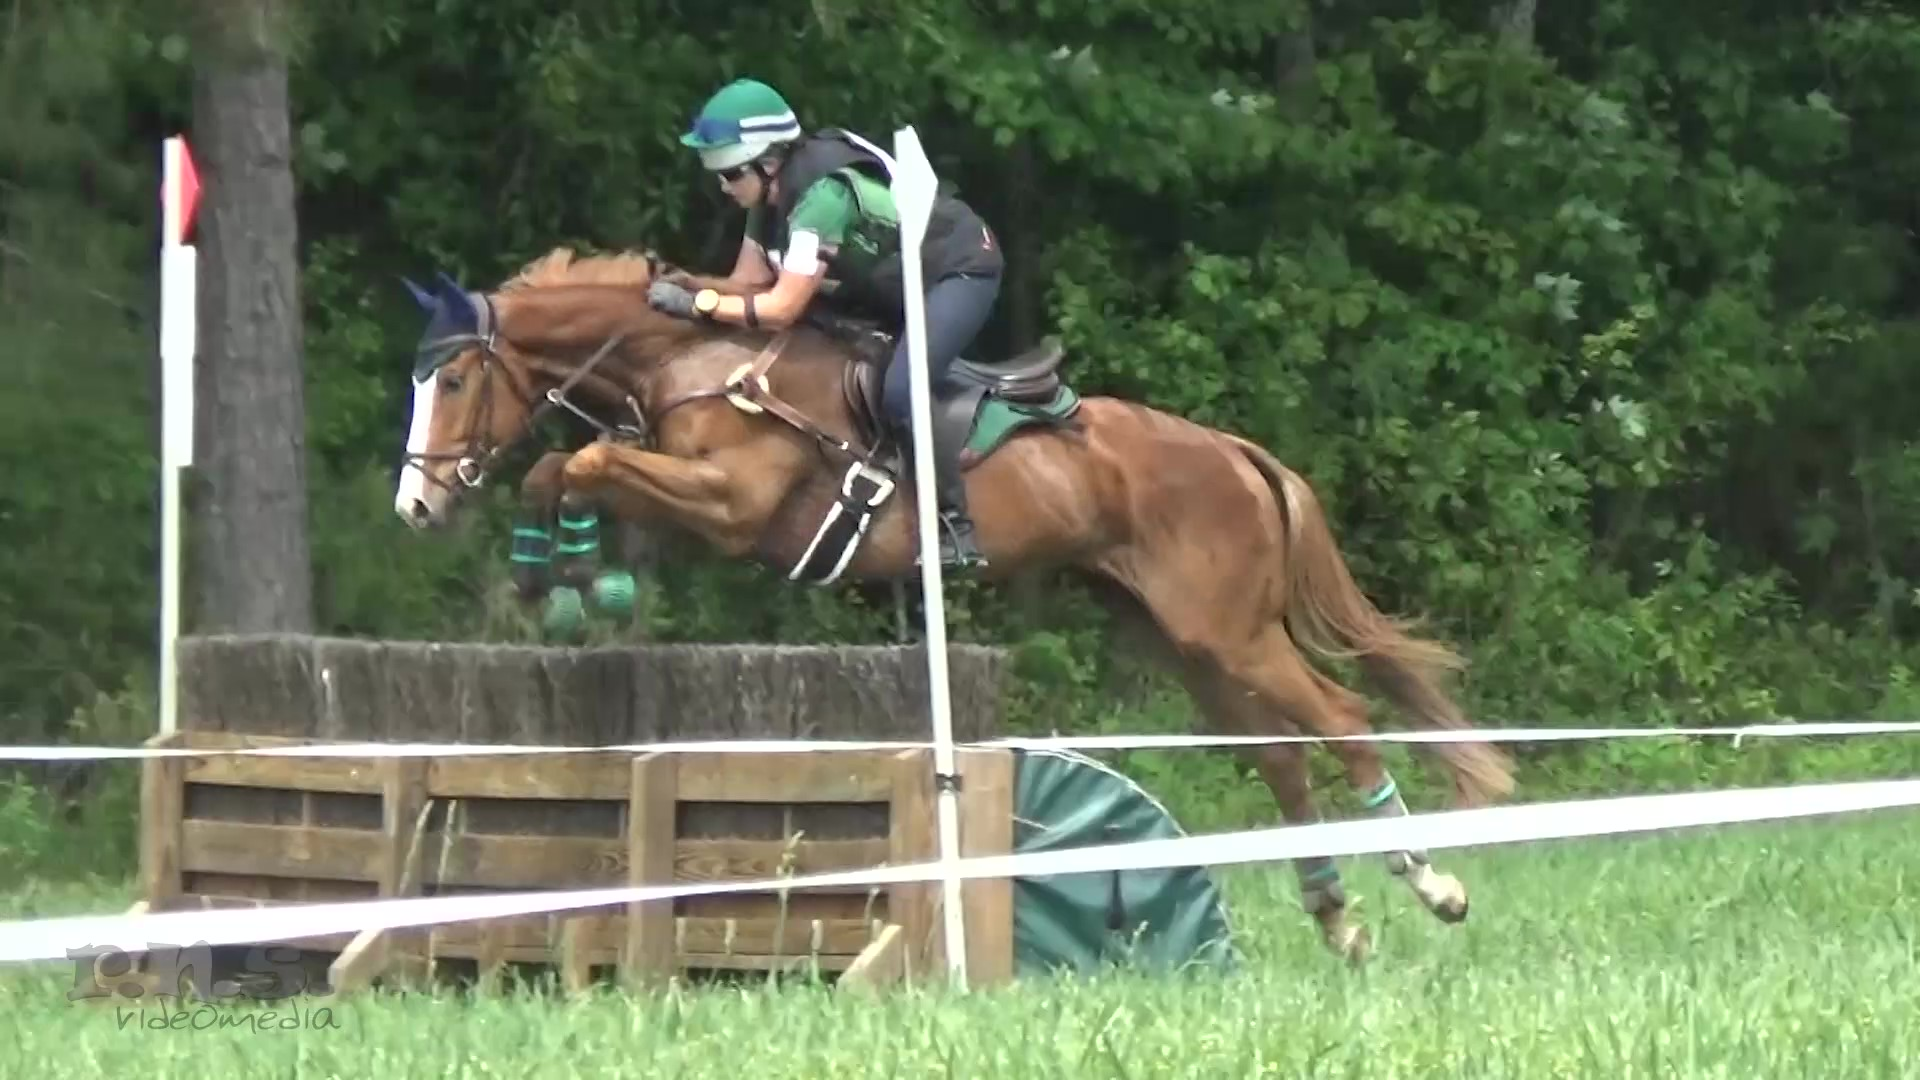 Classical Care and Training Facility – Dressage, Eventing, Jumpers – Close to HITS